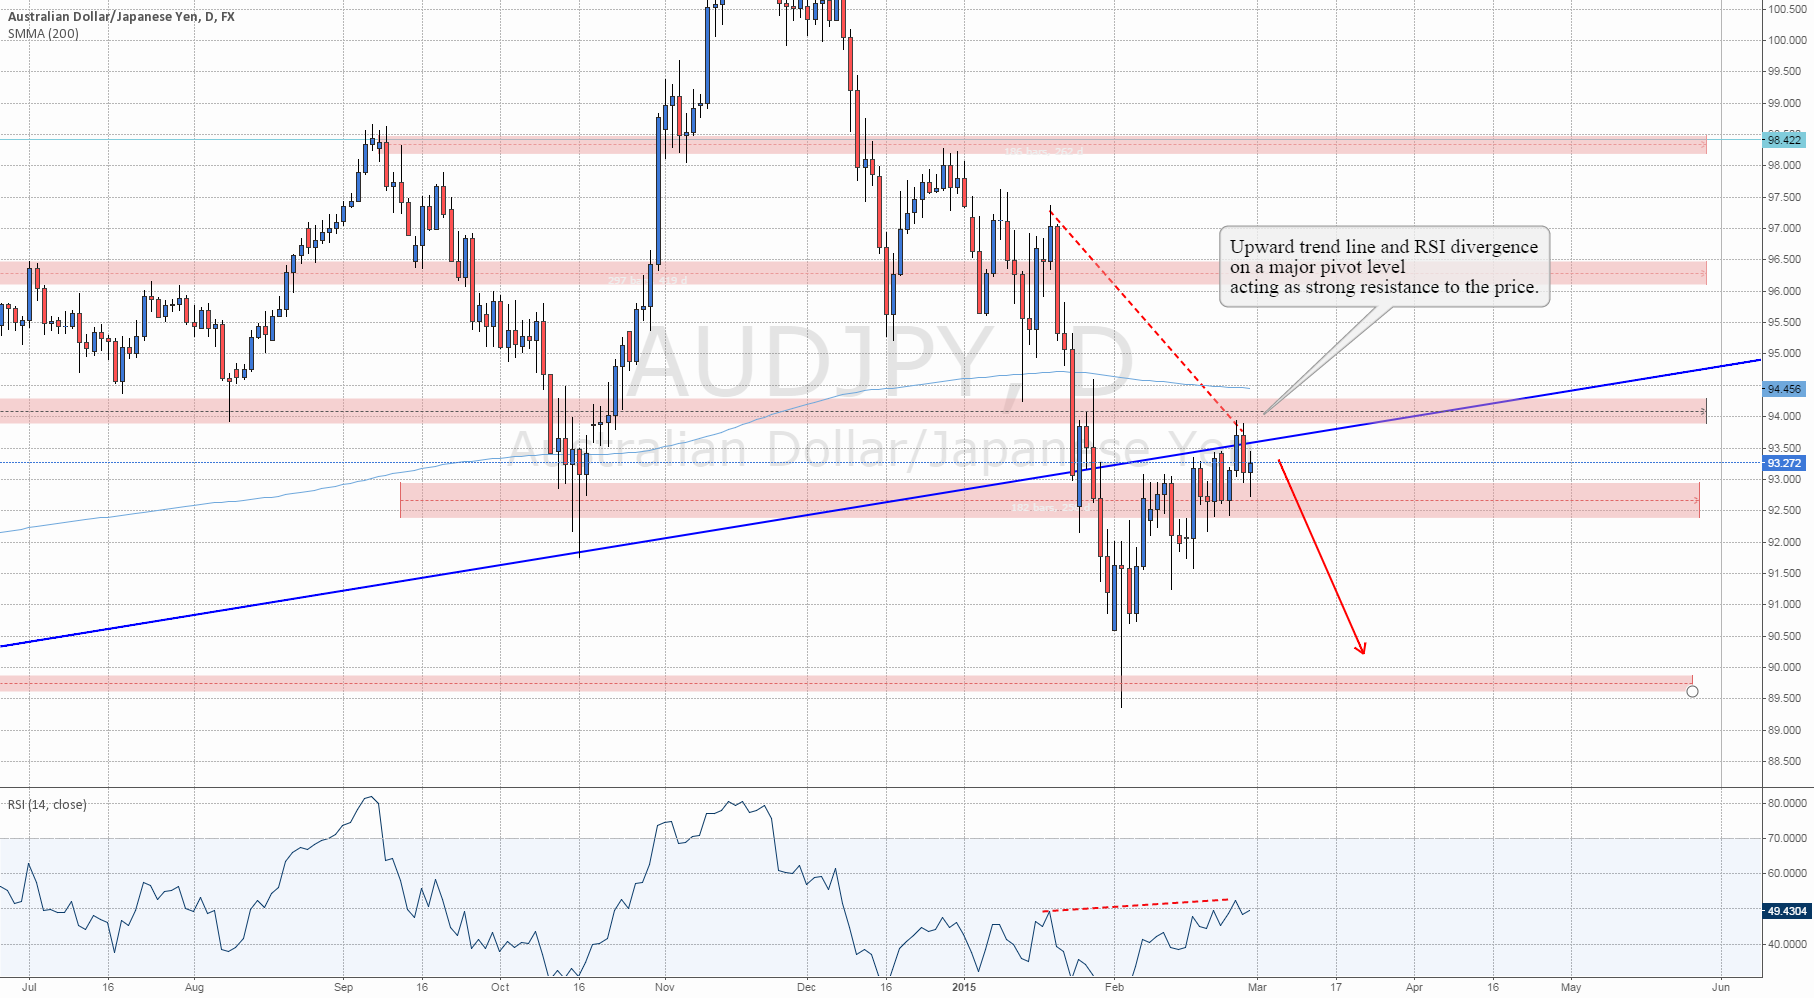 Level To Watch: #AUDJPY Divergence and Upward Trendline